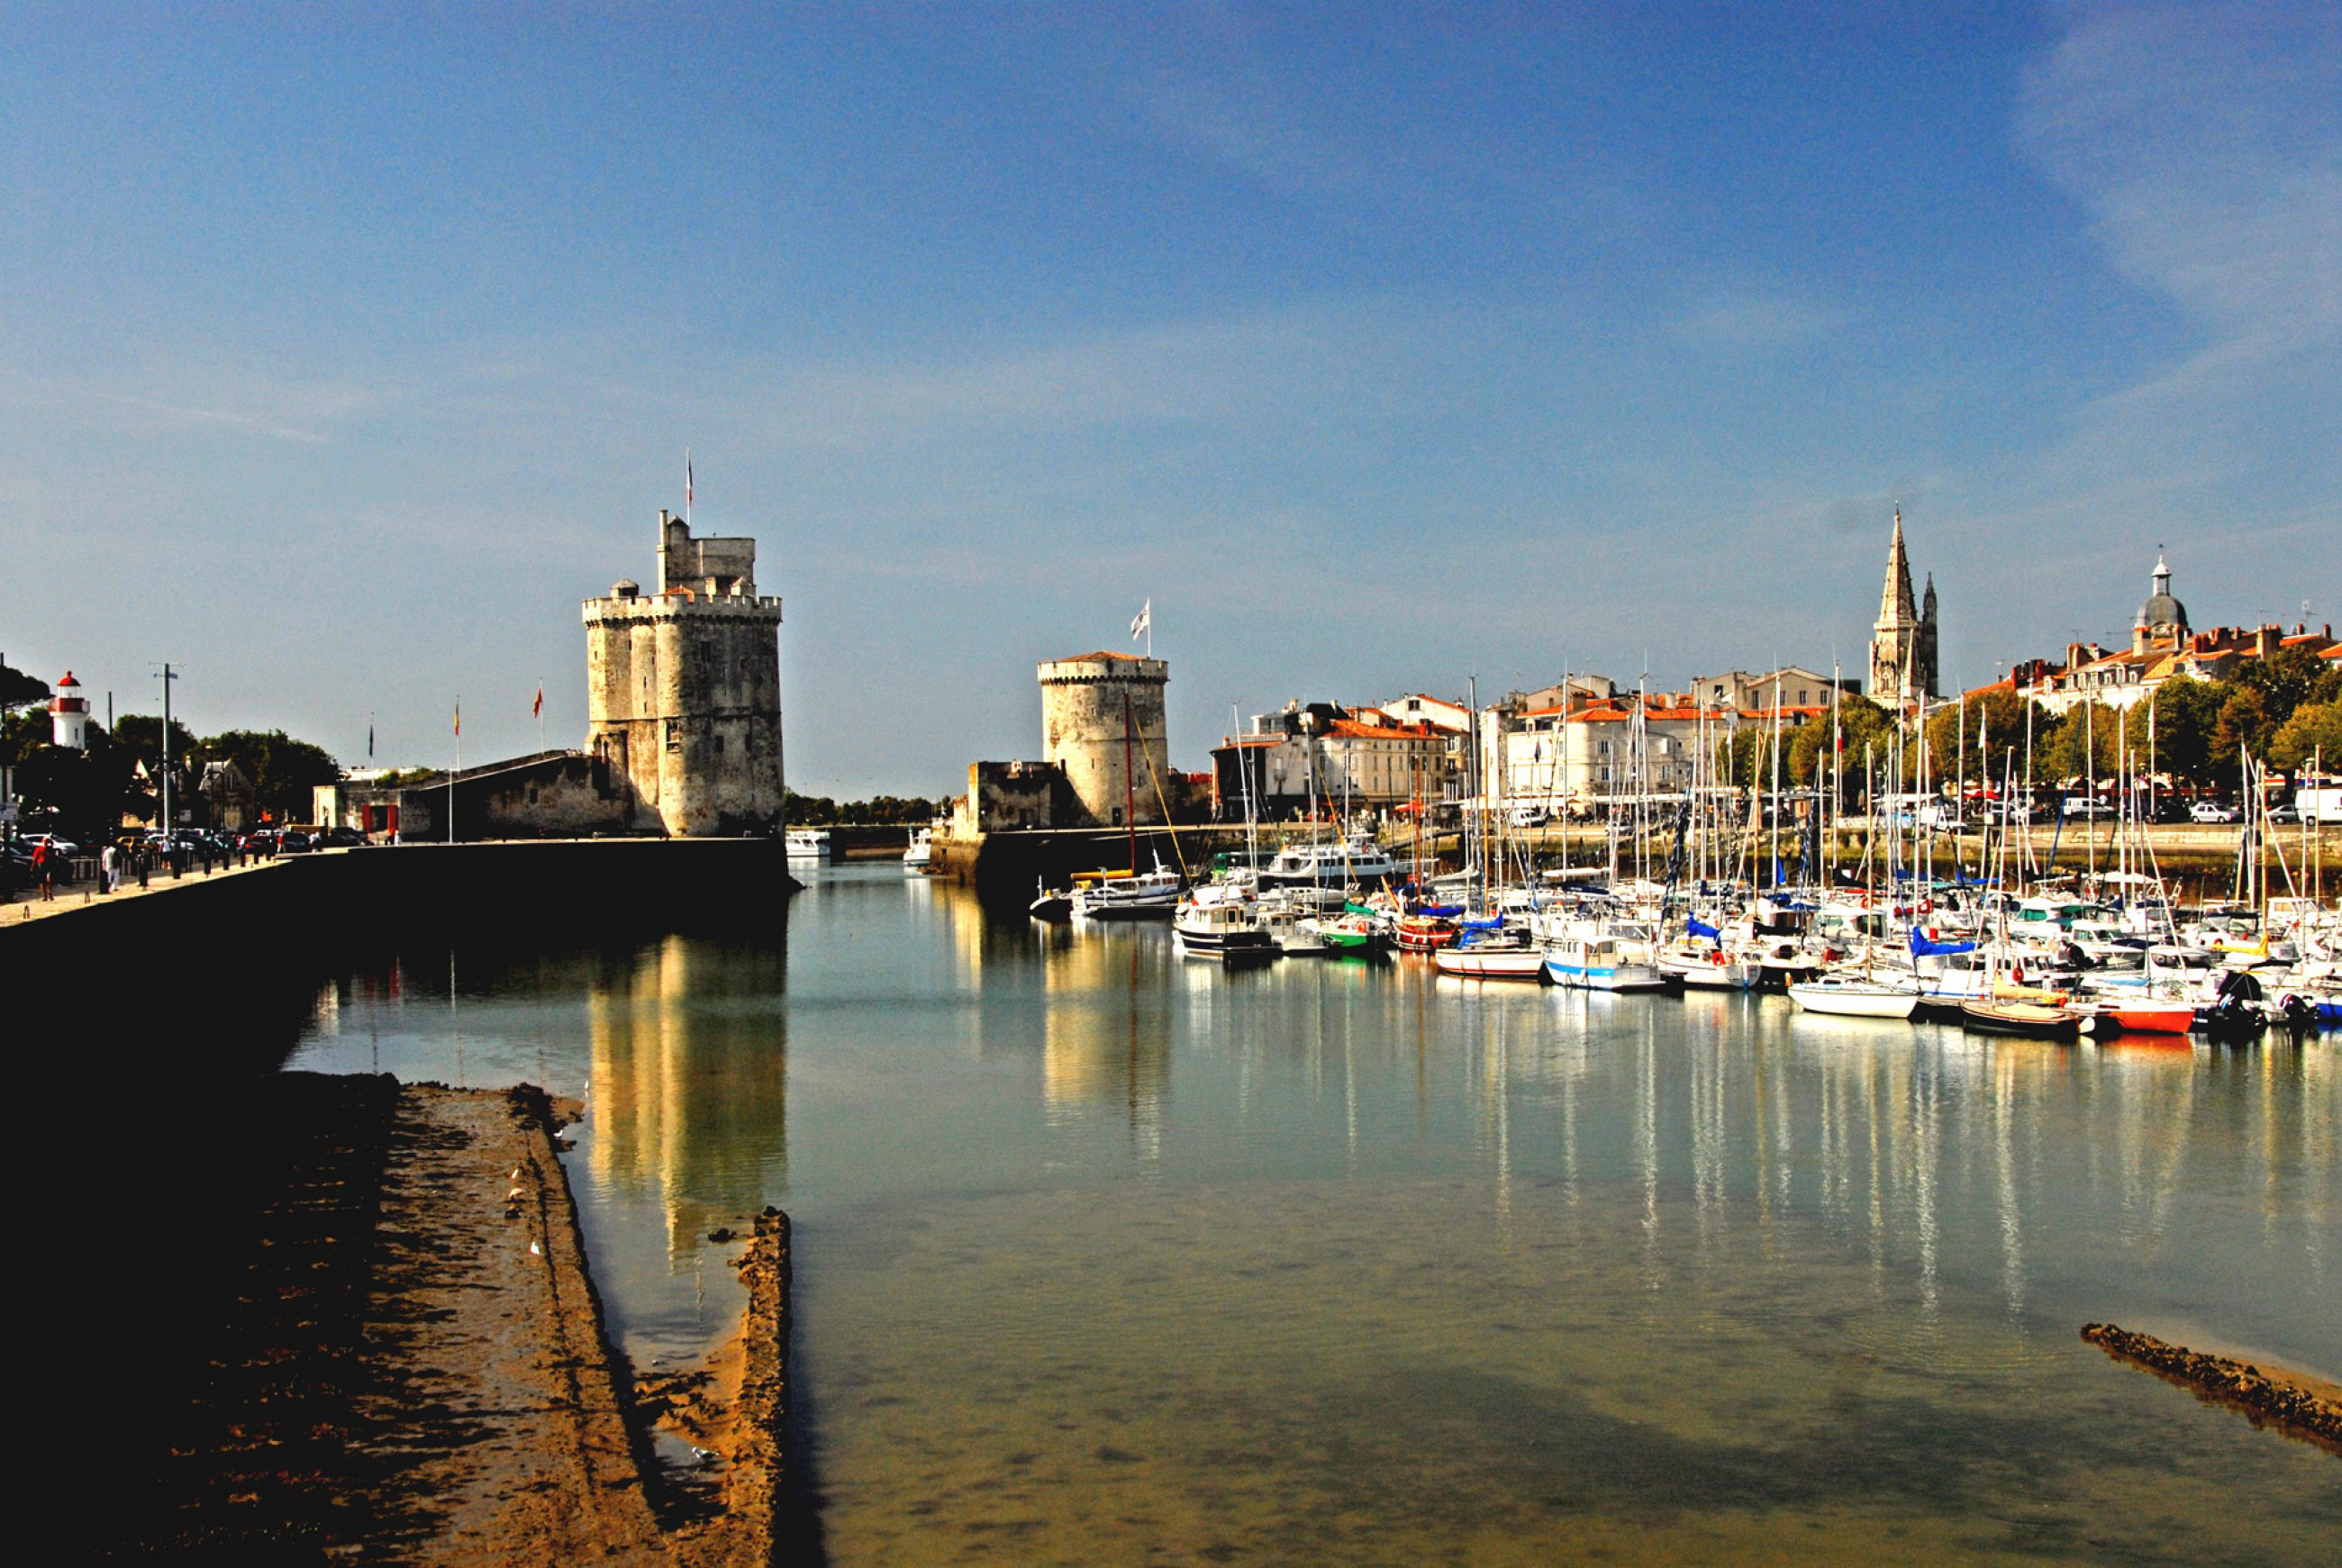 https://bubo.sk/uploads/galleries/5049/wikipedia-f07.larochelle.0019.jpg